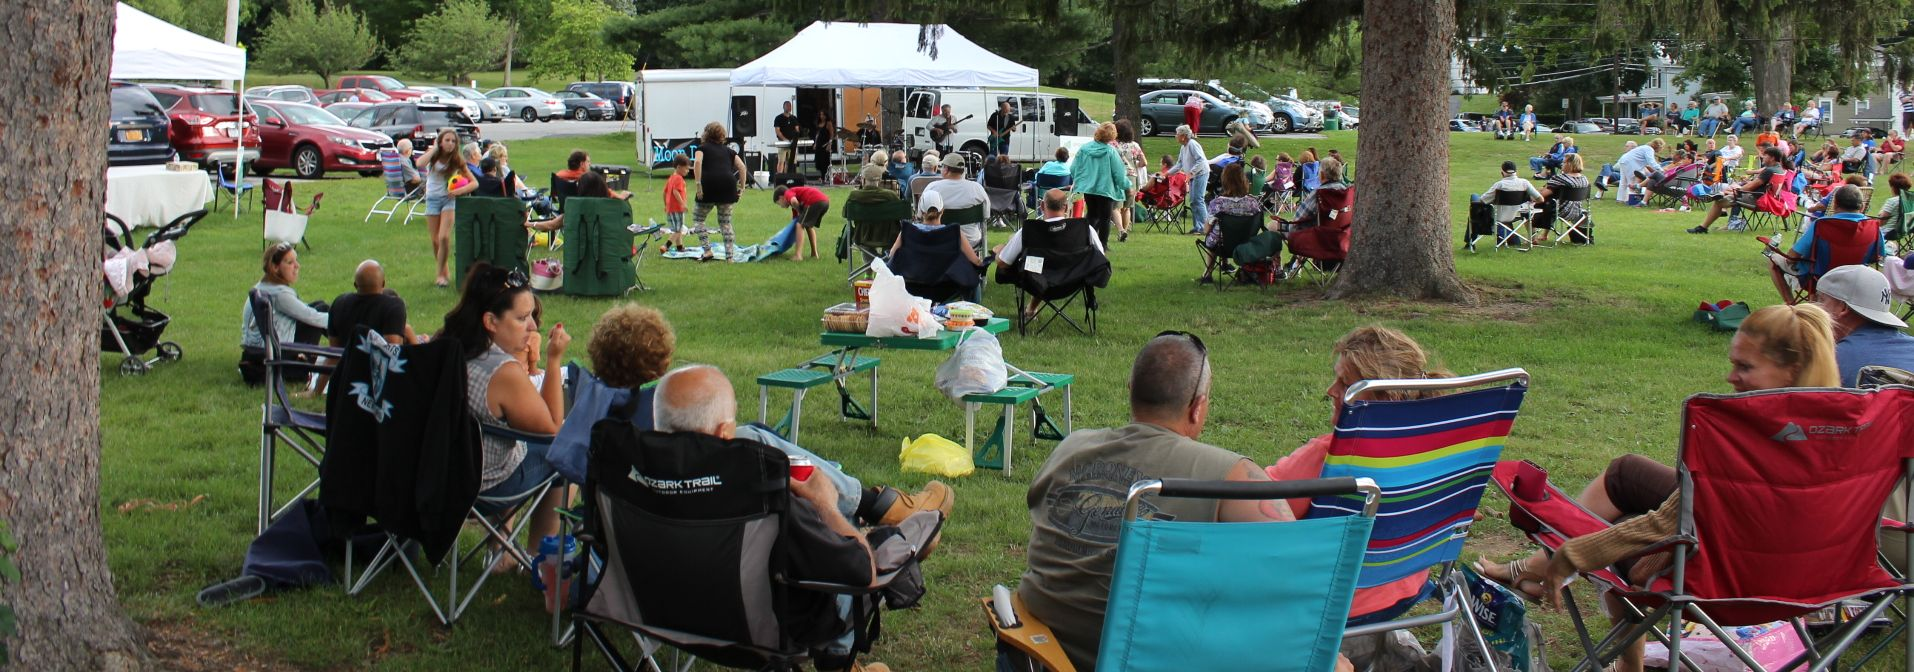 Cornwall music at the park family fun